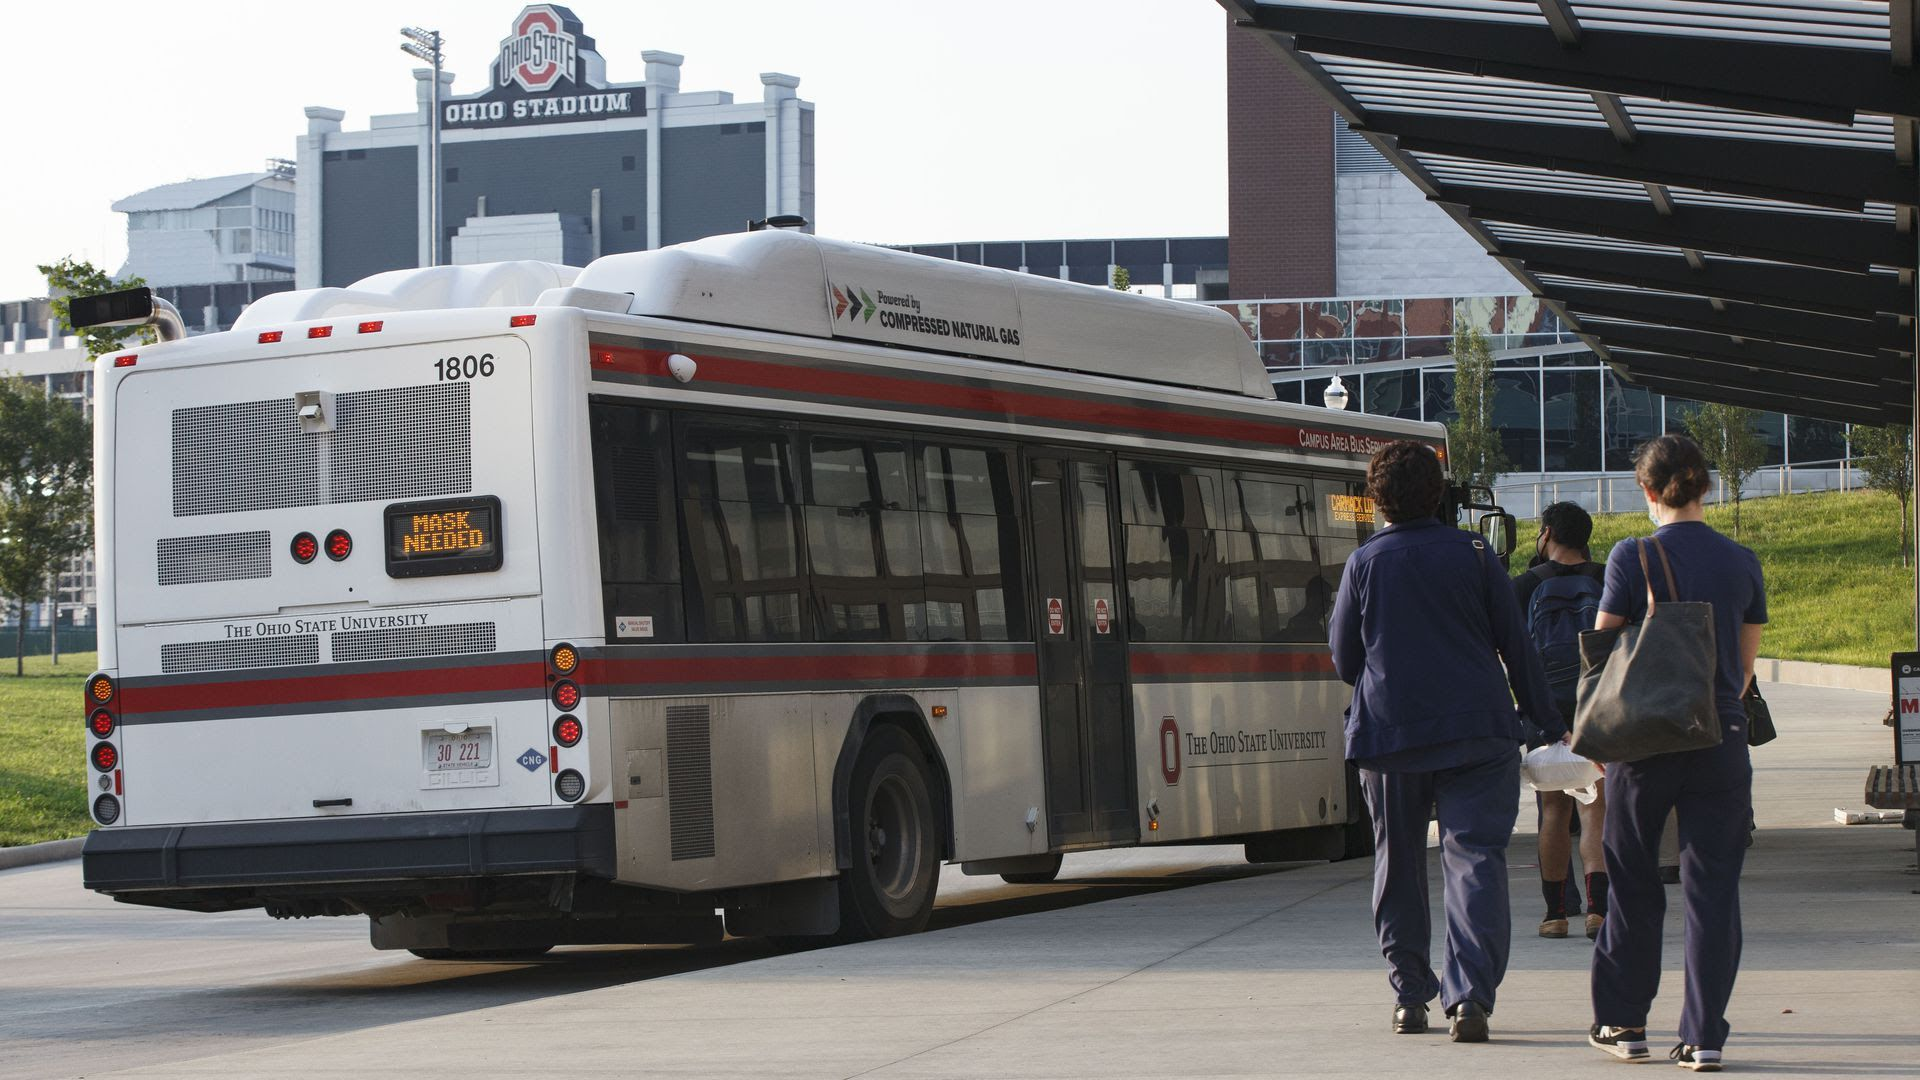 Students and medical workers line up to take a bus on the Ohio State University campus.